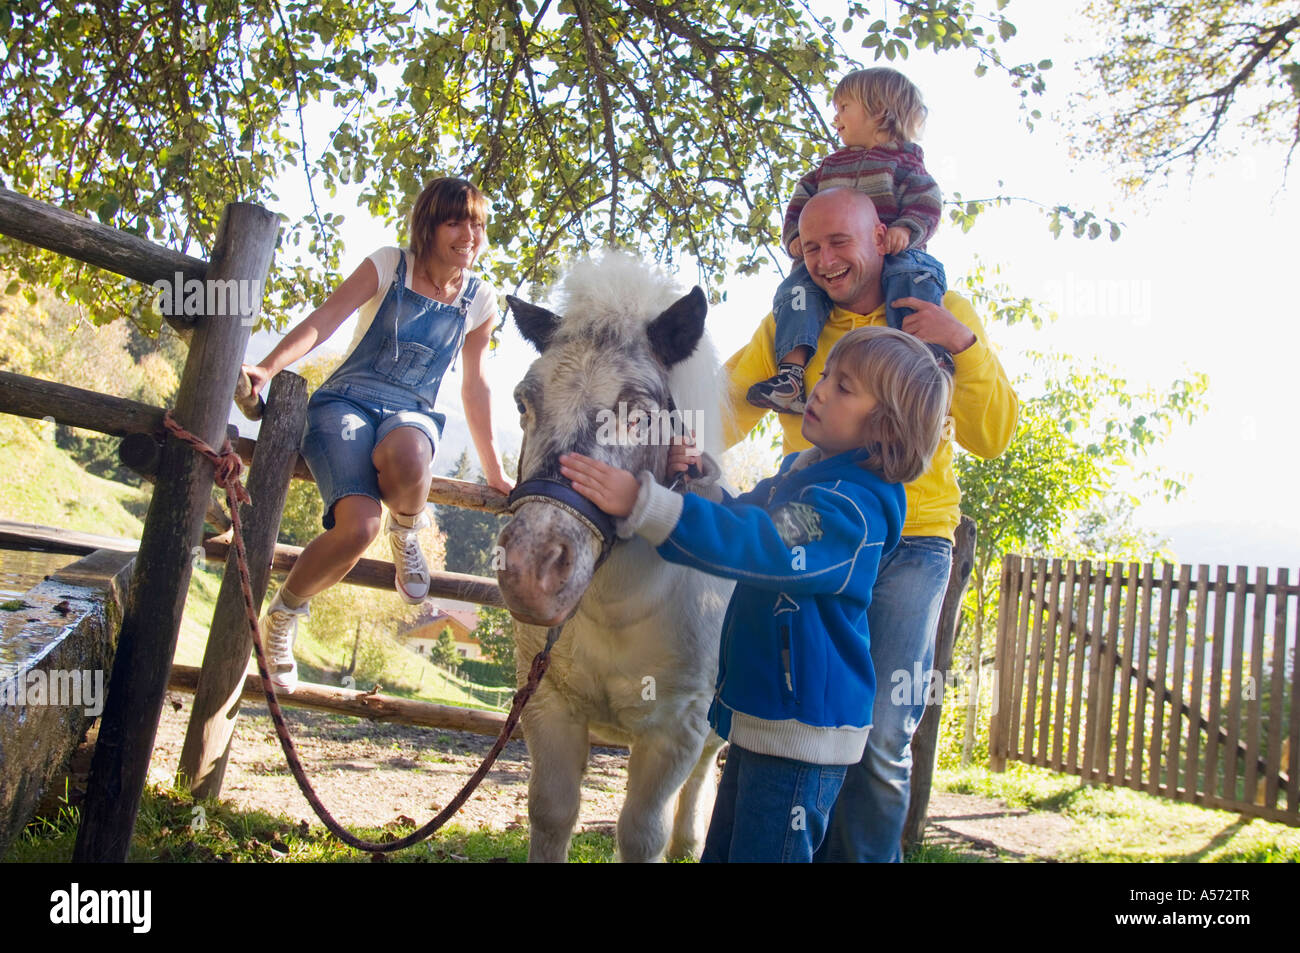 Family with pony by fountain - Stock Image